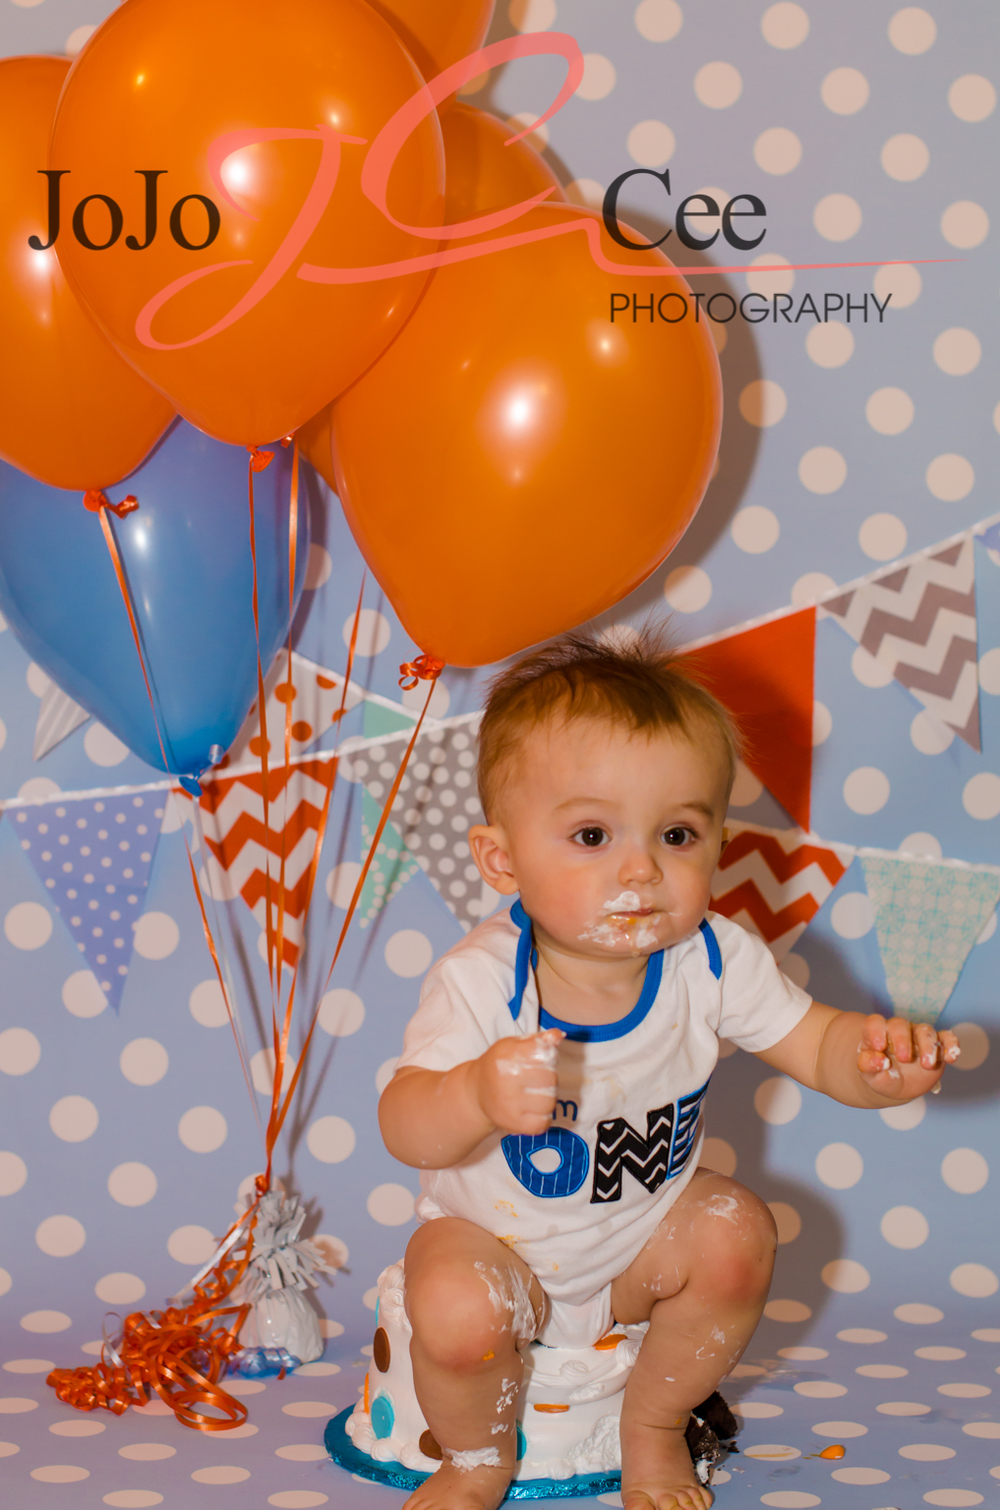 Gjorjis_1st_Birthday_Shoot_2015-8.jpg